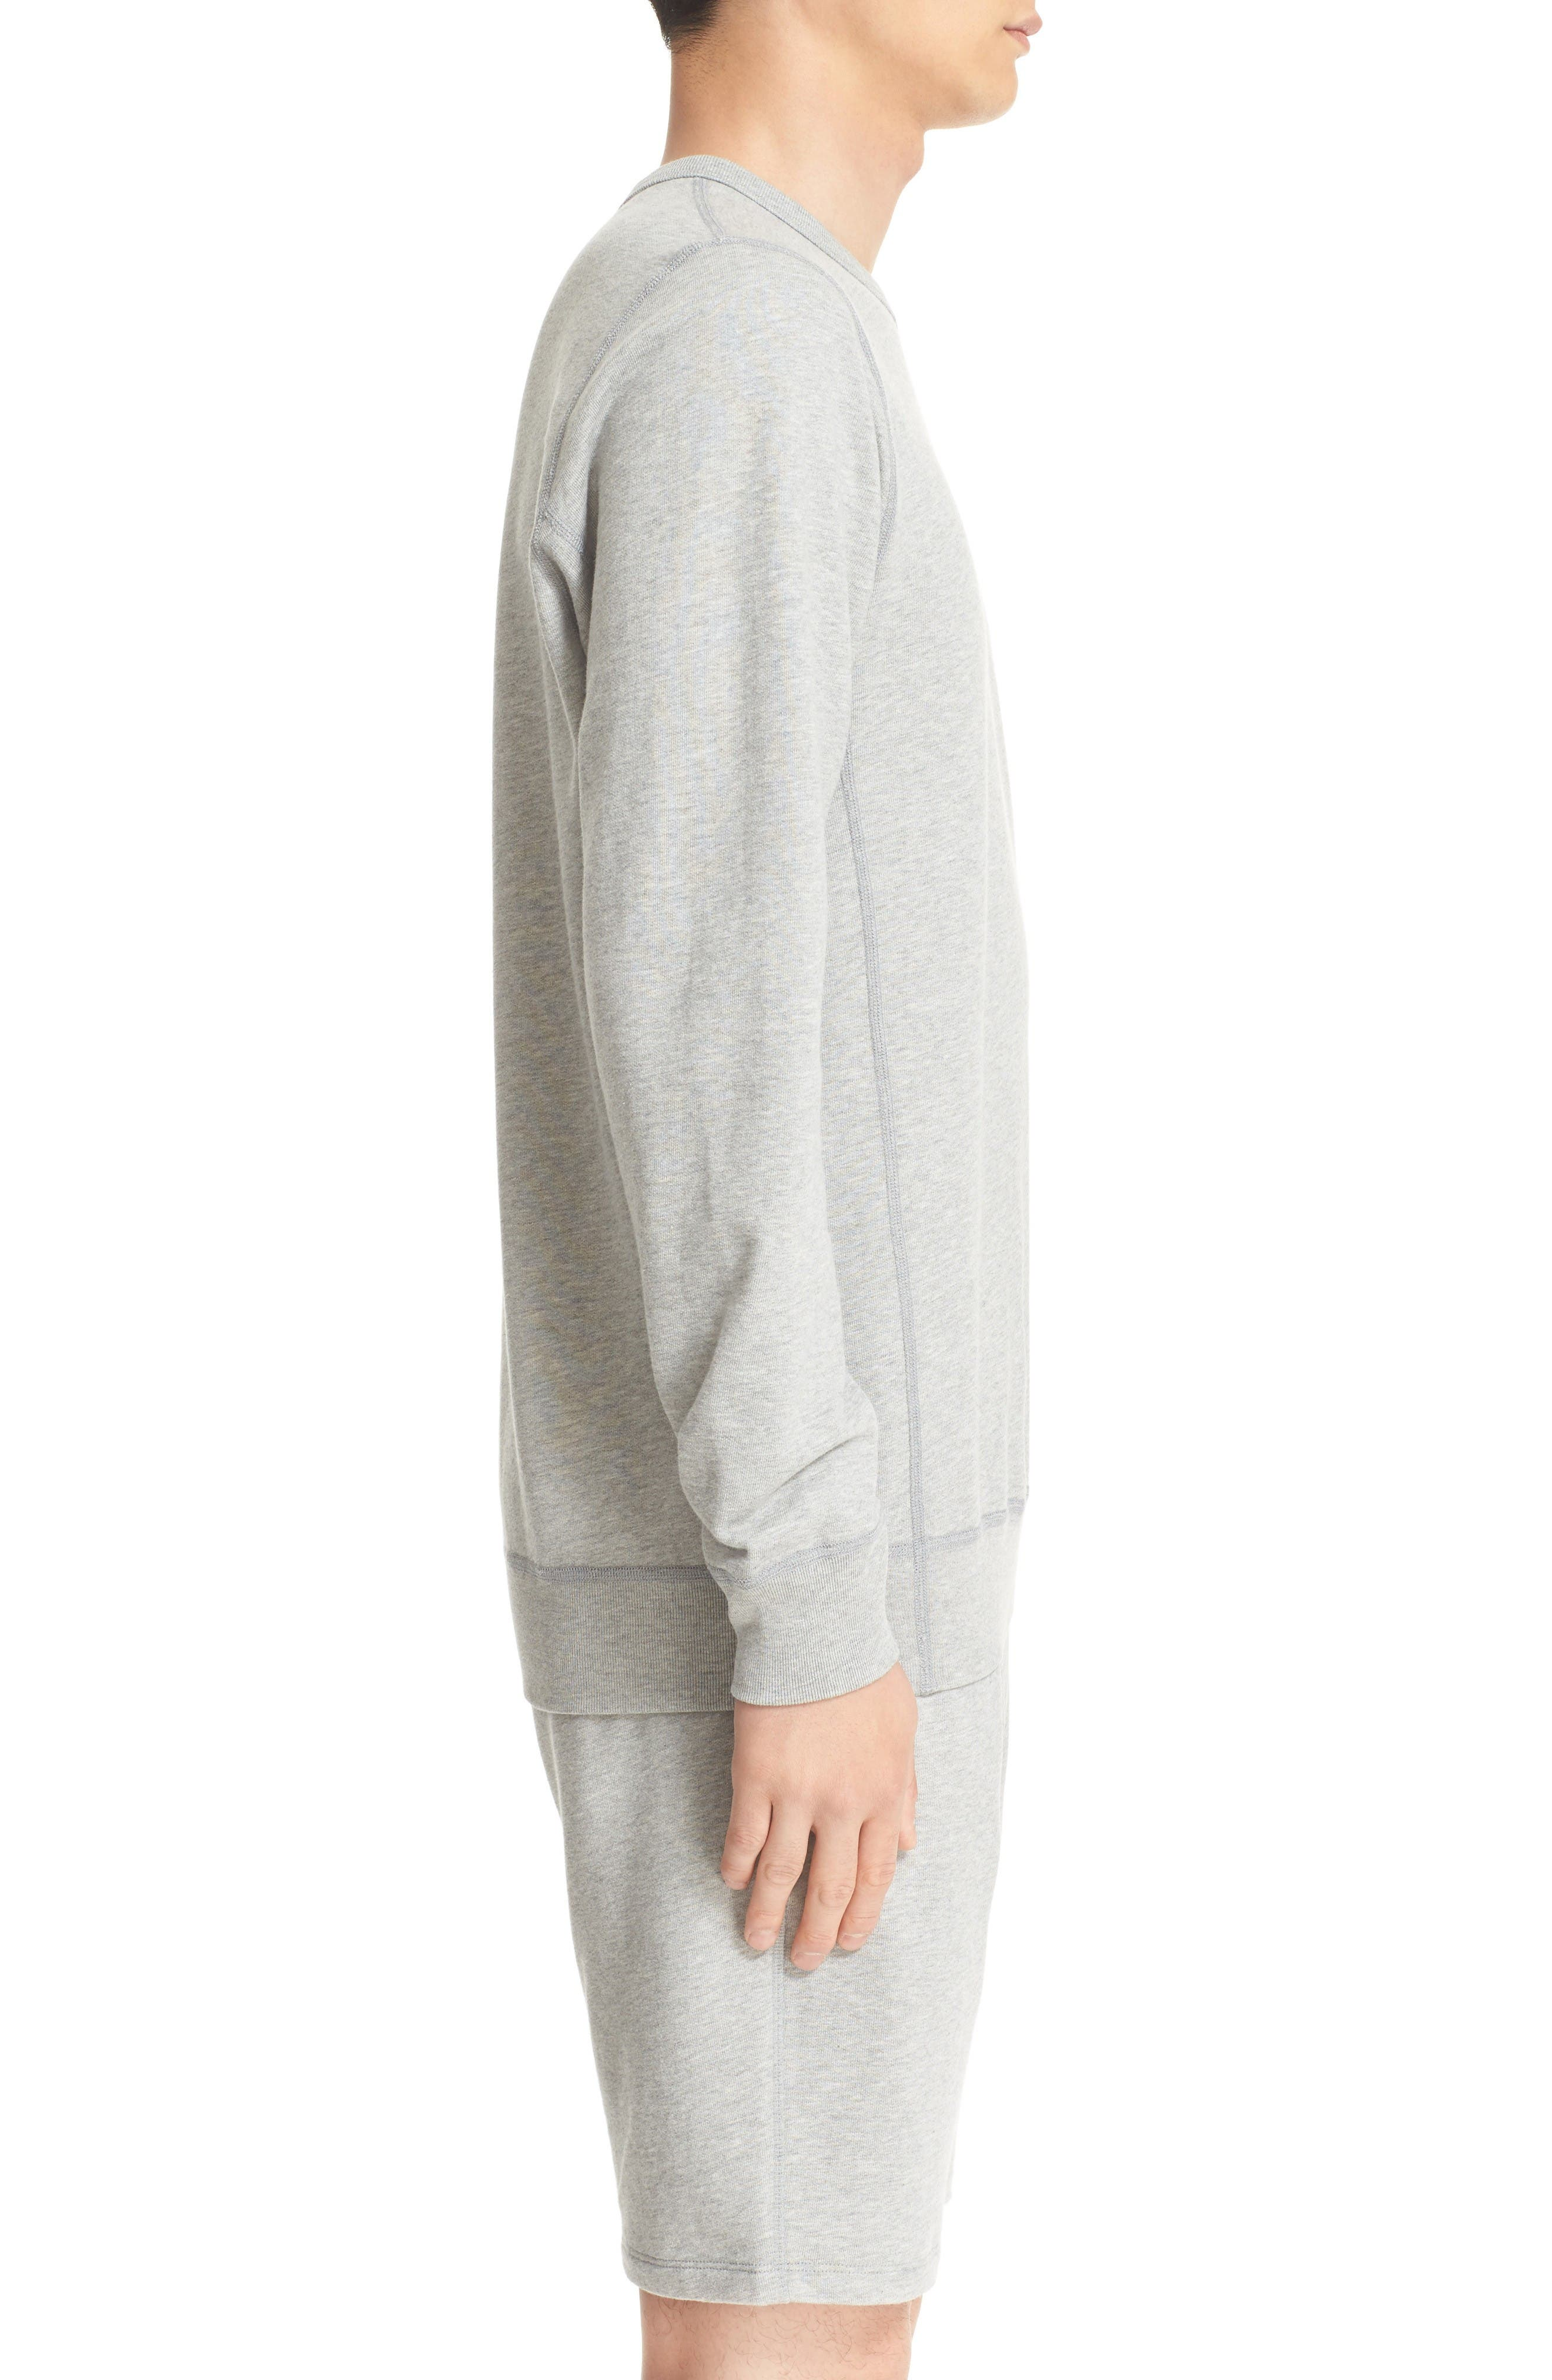 French Terry Sweatshirt,                             Alternate thumbnail 3, color,                             Heather Grey